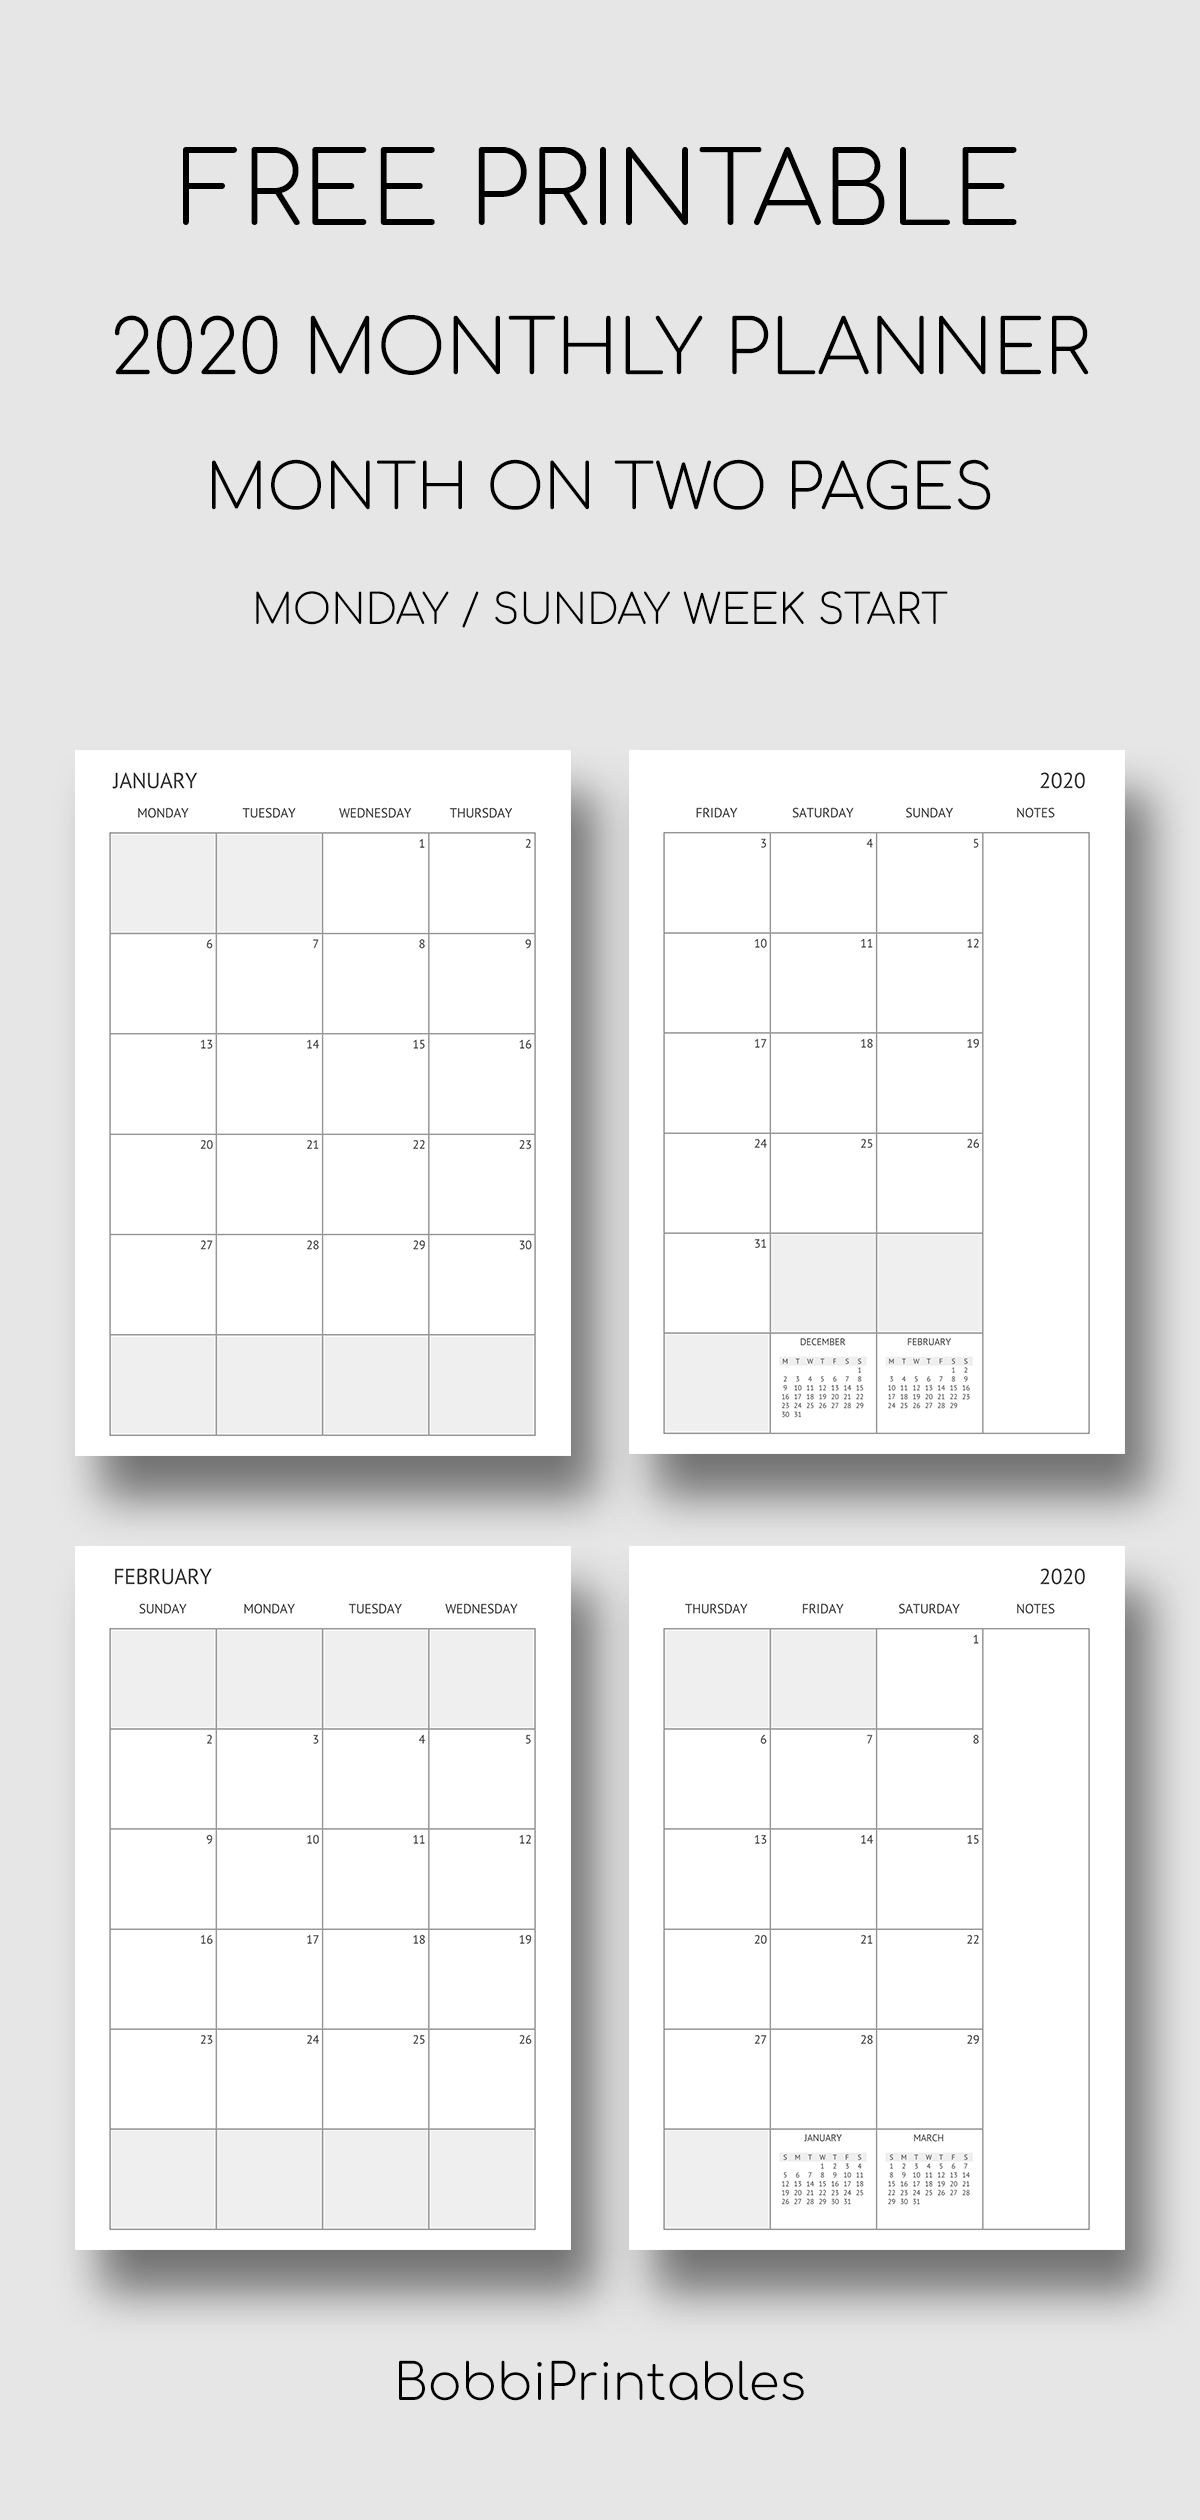 Printable 2020 Monthly Planner - Month On Two Pages In 2020